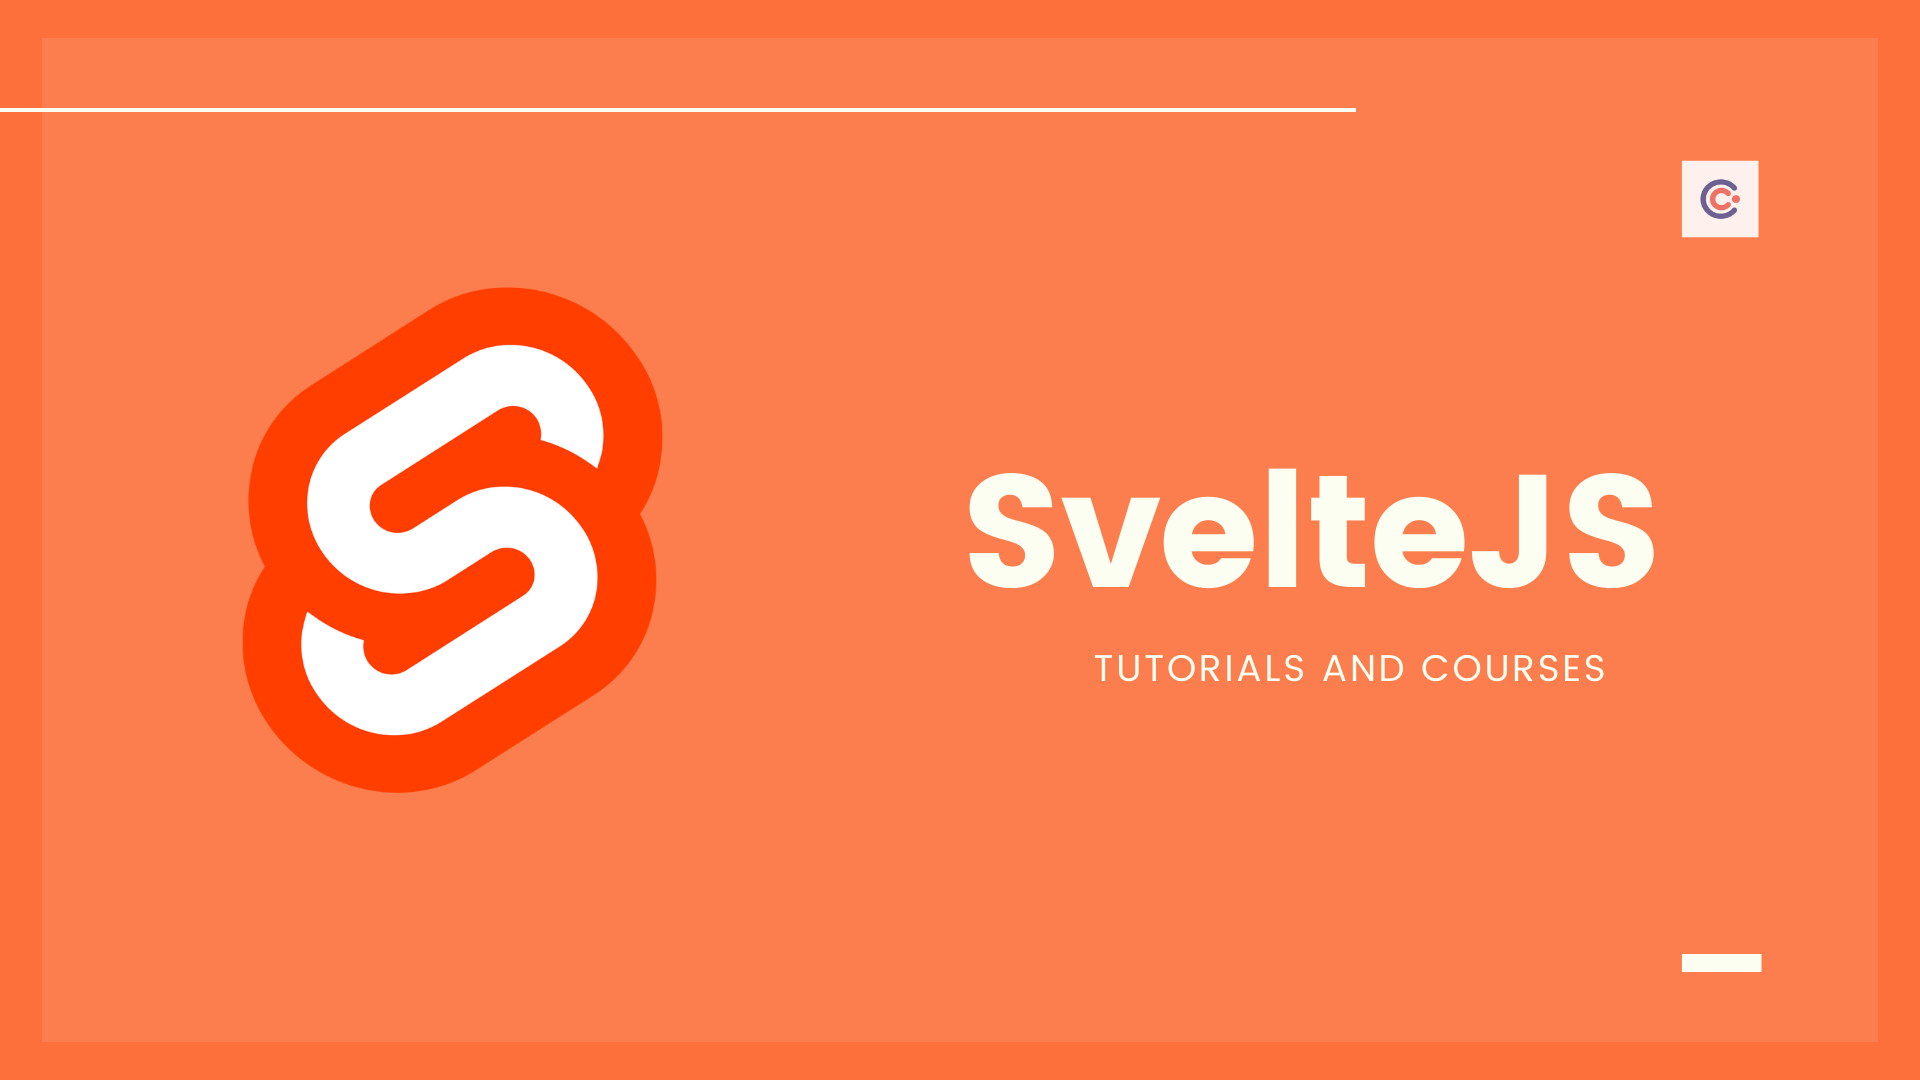 6 Best SvelteJS Tutorials and Courses - Learn SvelteJS Online